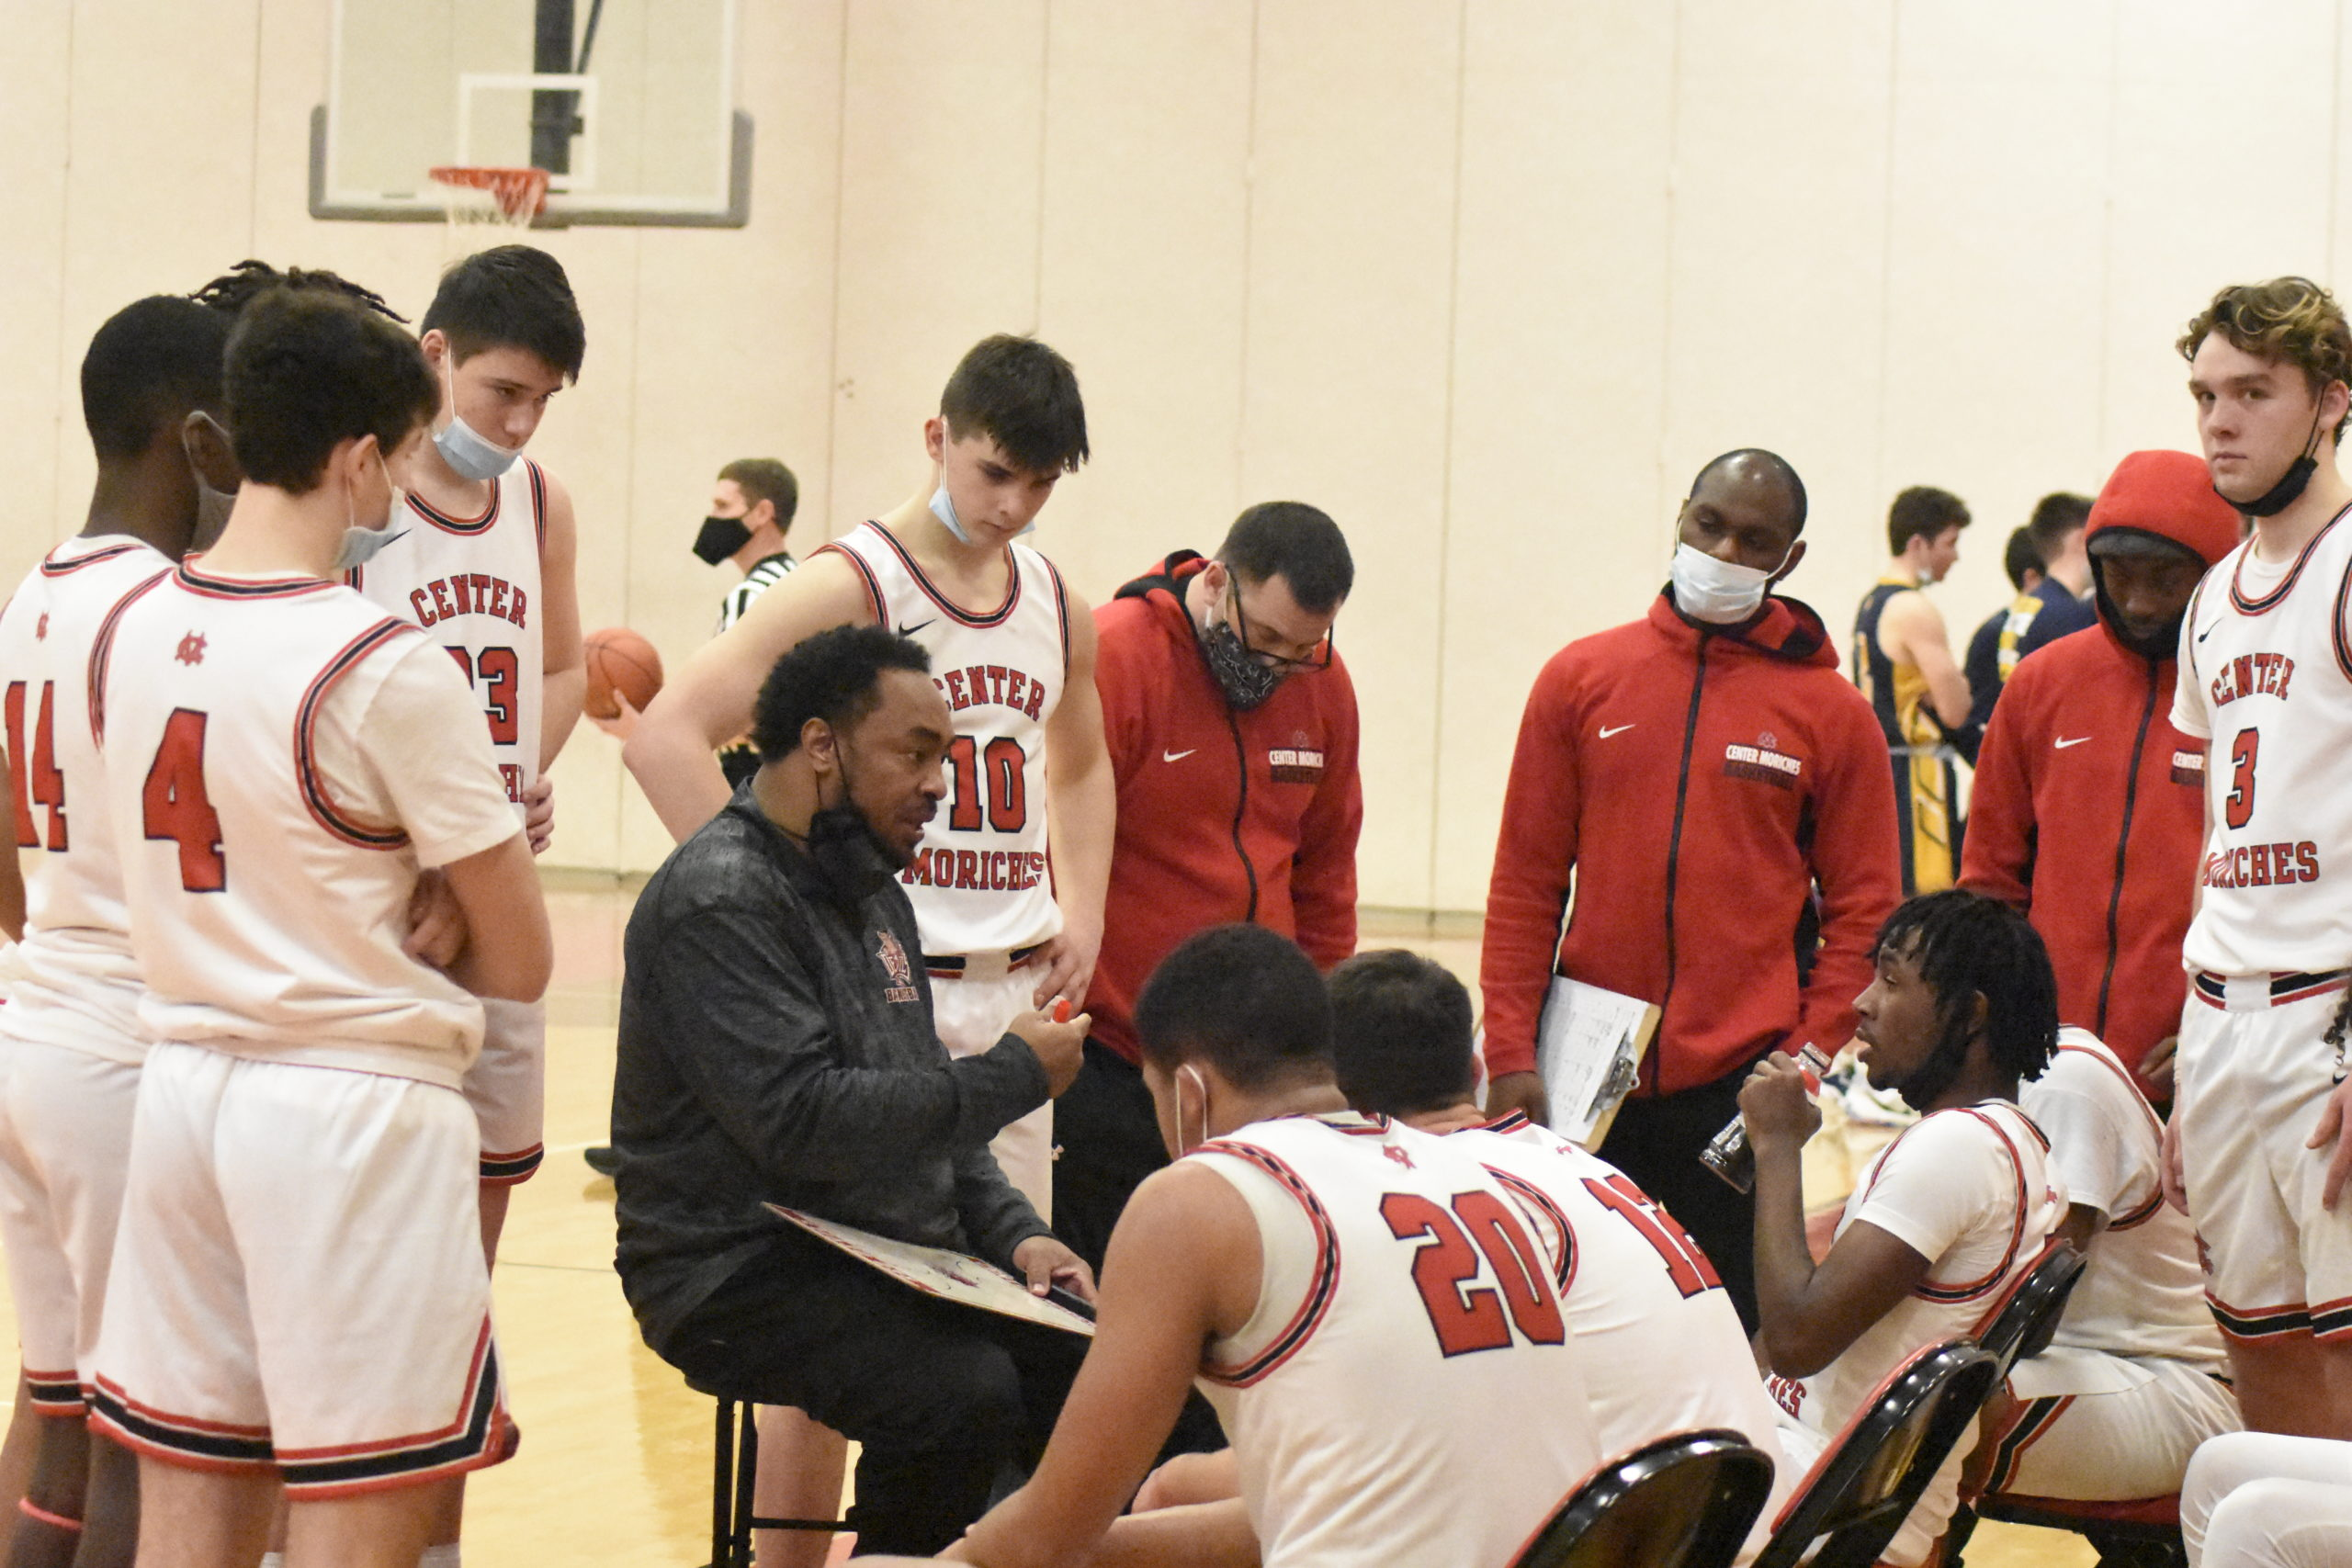 Nick Thomas once again led the Center Moriches boys basketball team to another successful season this winter.